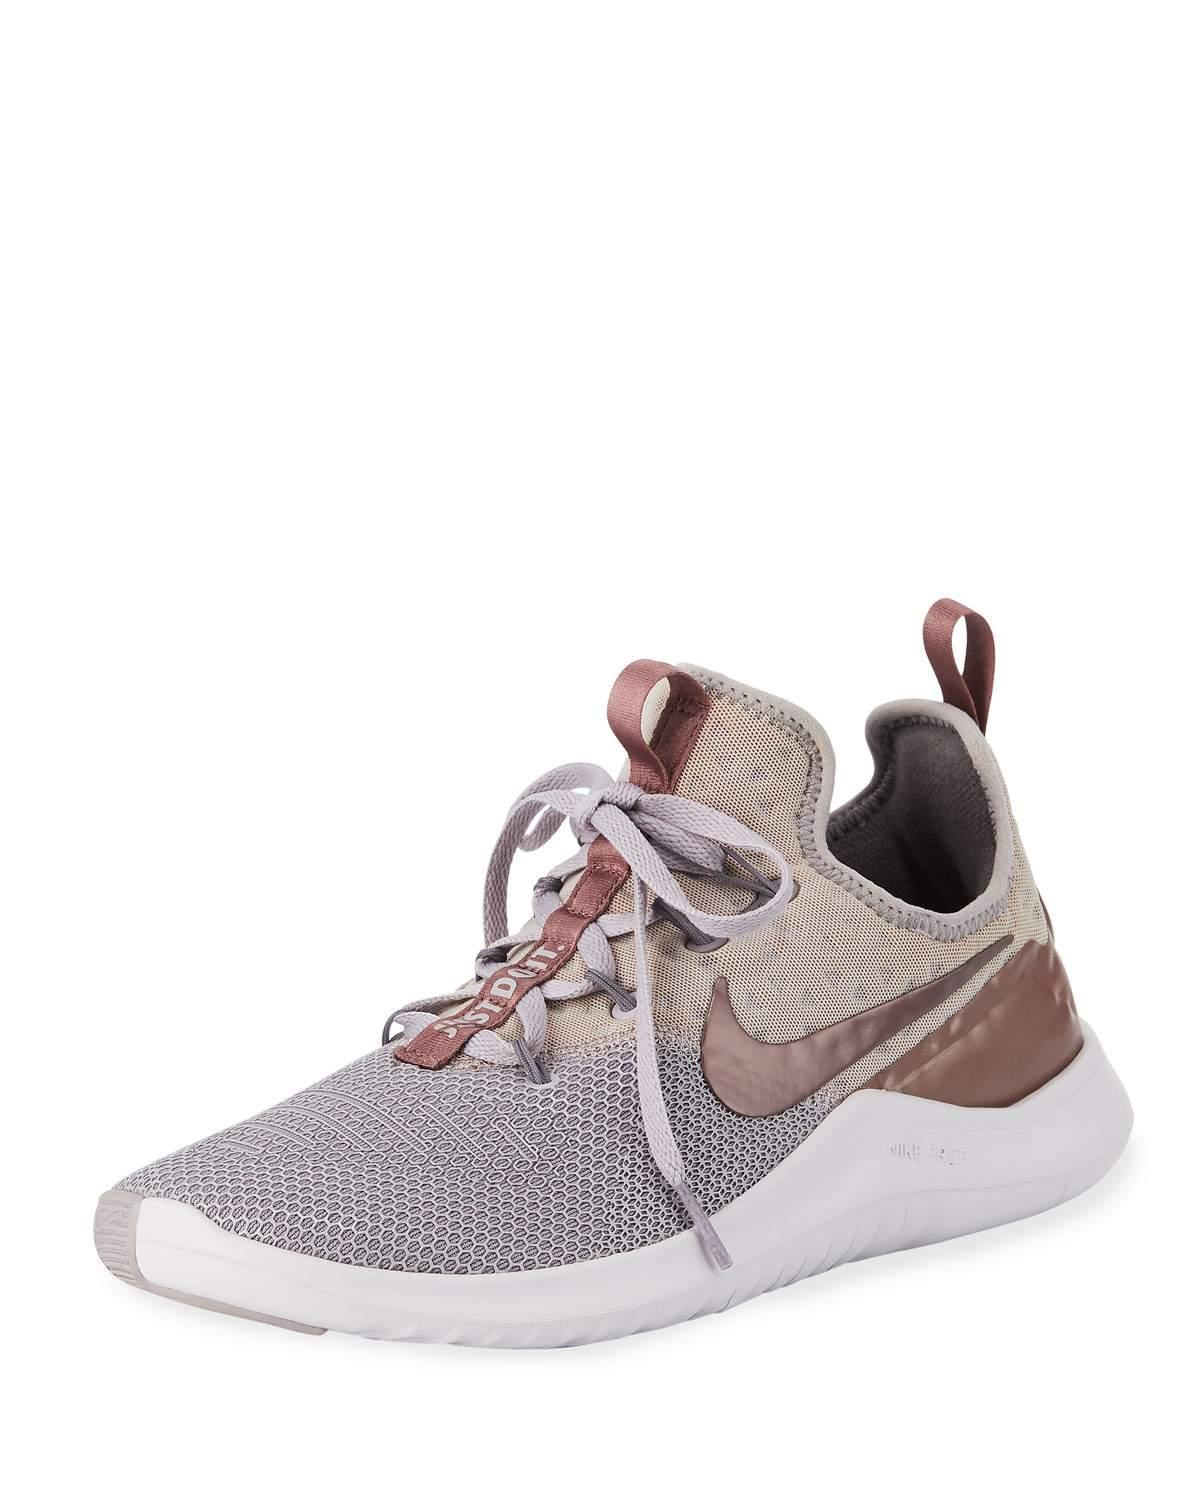 online store f151c caa24 NIKE. Women s Free Tr 8 Lm Training Shoes, Grey